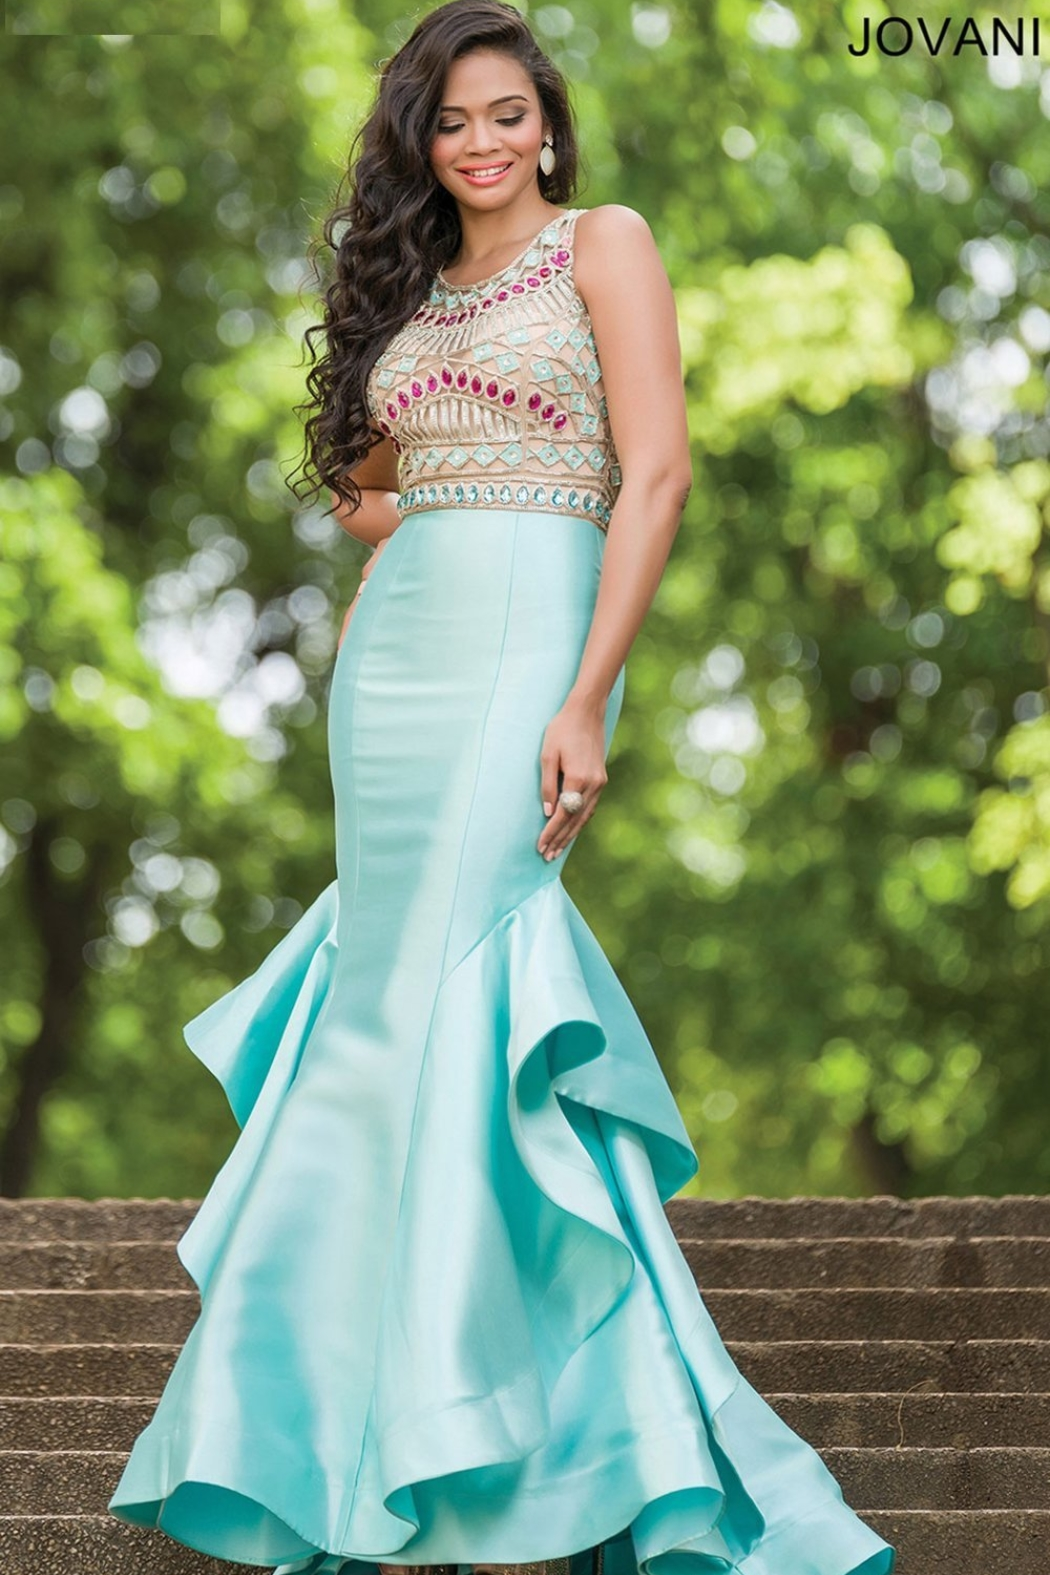 Jovani 28432A - Beaded Top with Ruffled Trumpet Skirt Gown - Front Cropped Image